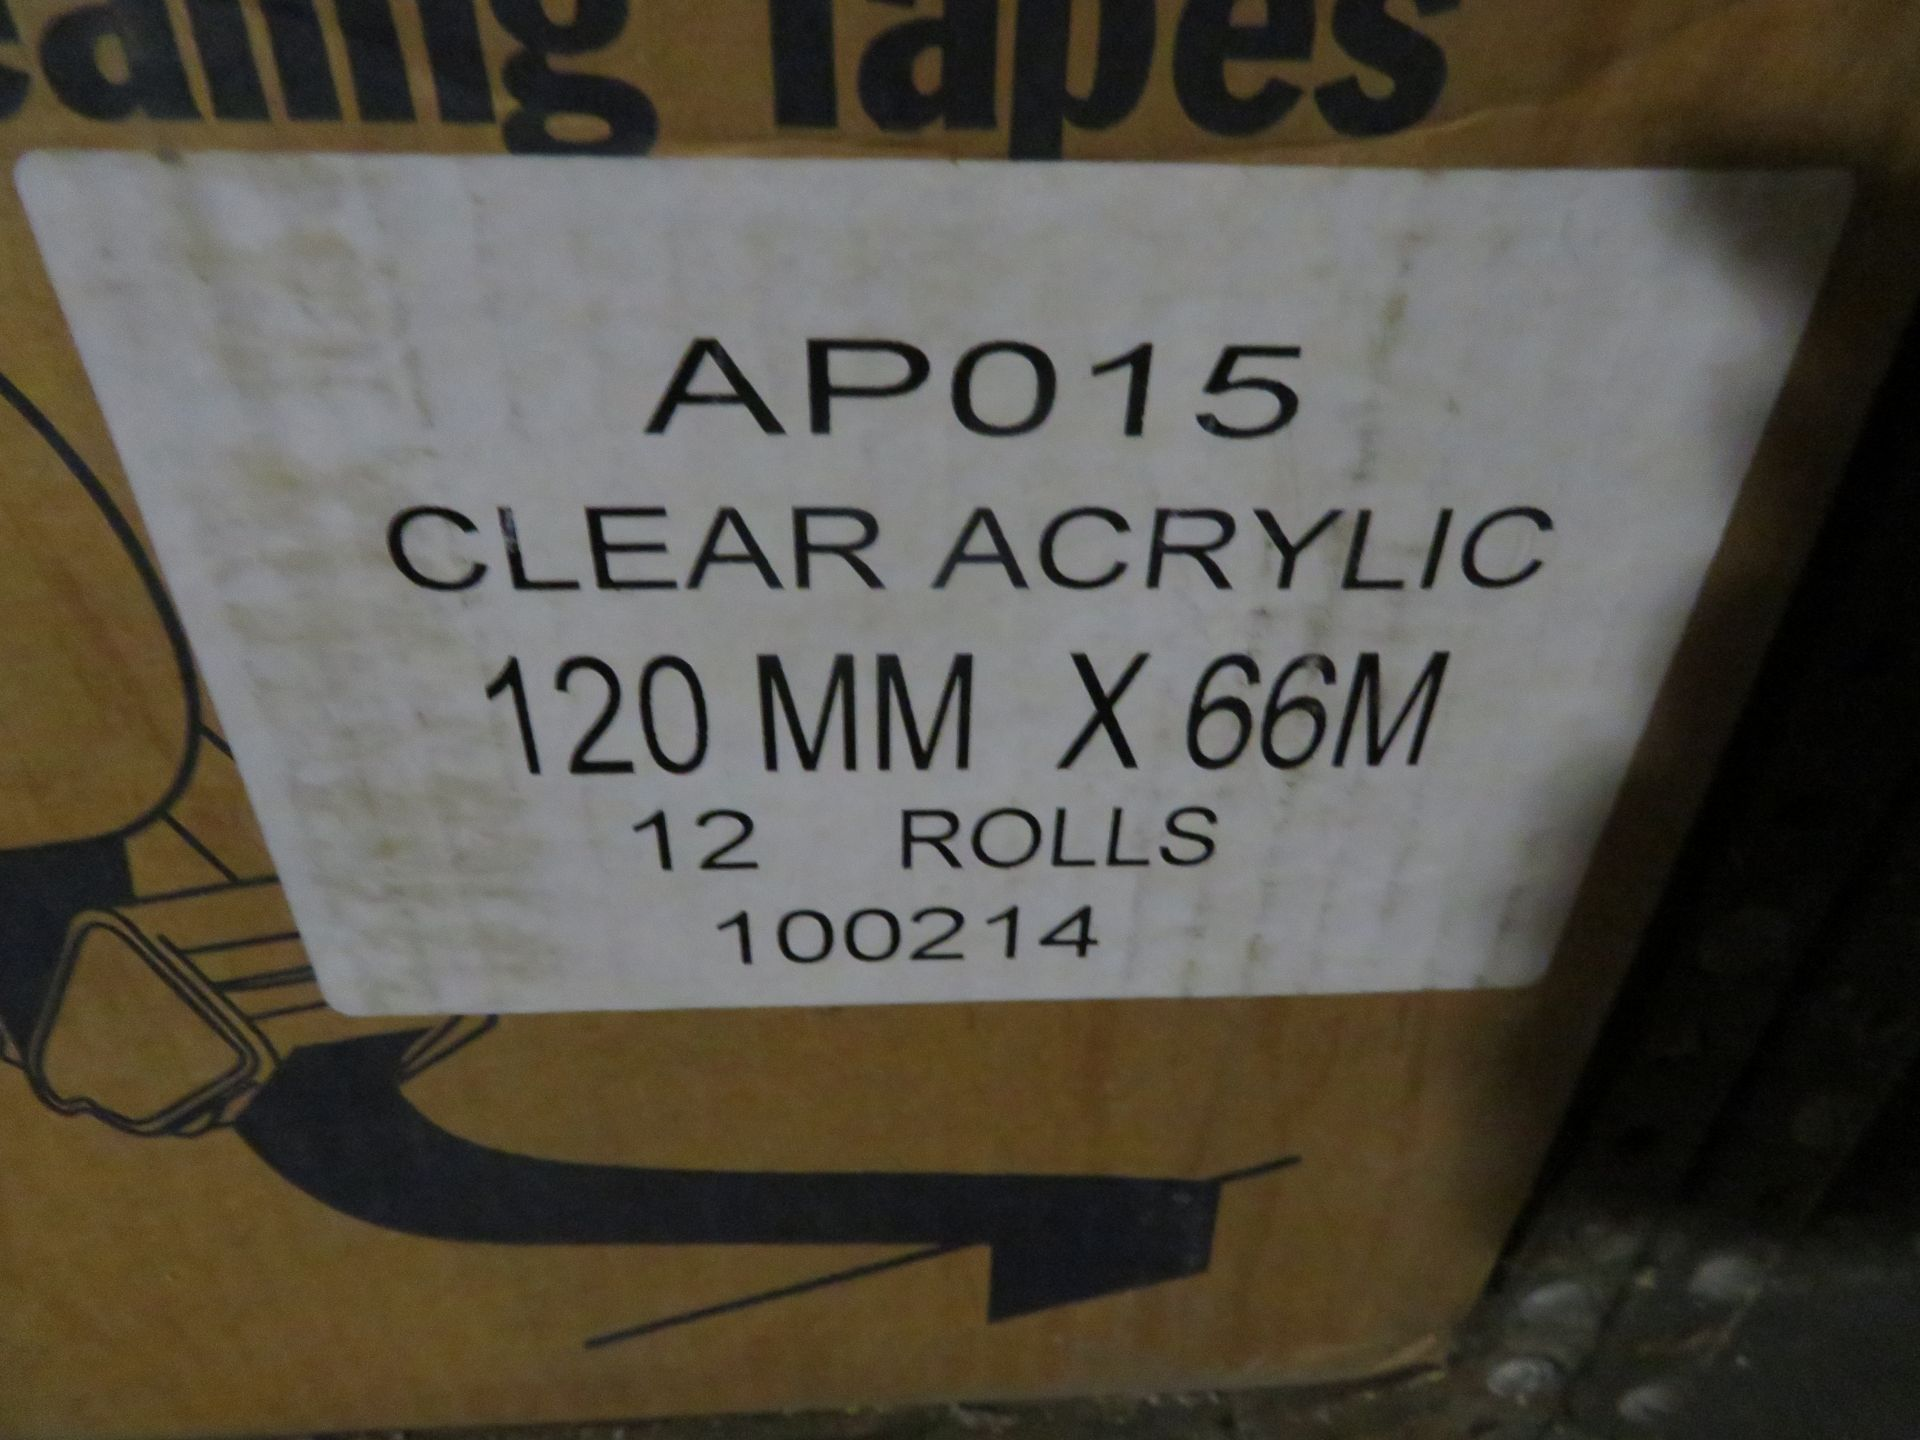 (3) BOXES CLEAR 5 IN POCKET, ORANGE & 4.75 CLEAR CARTON SEALING TAPE - Image 4 of 4